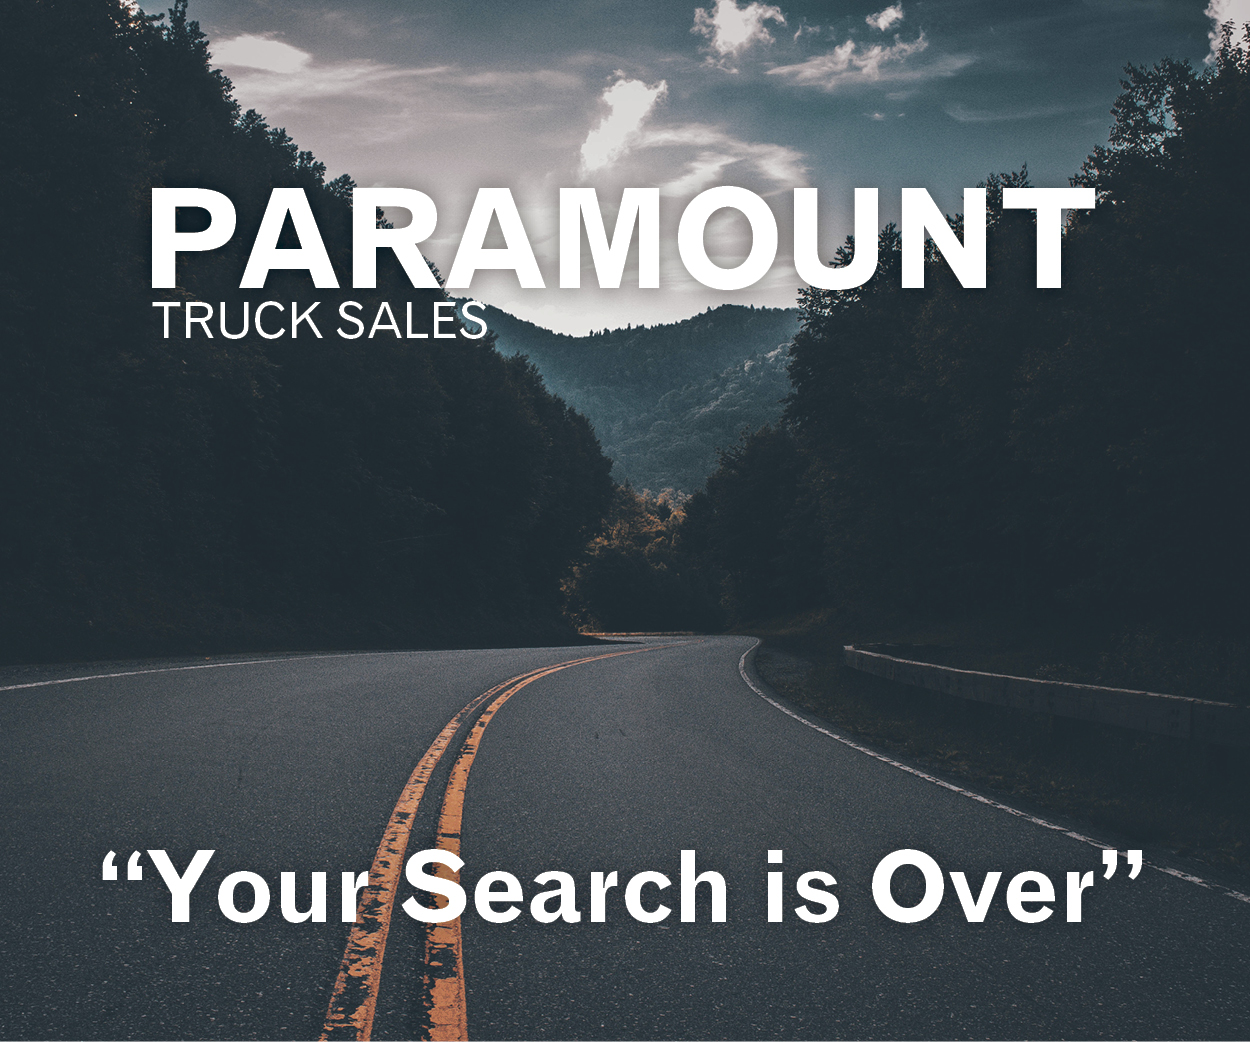 More from Paramount Truck Sales